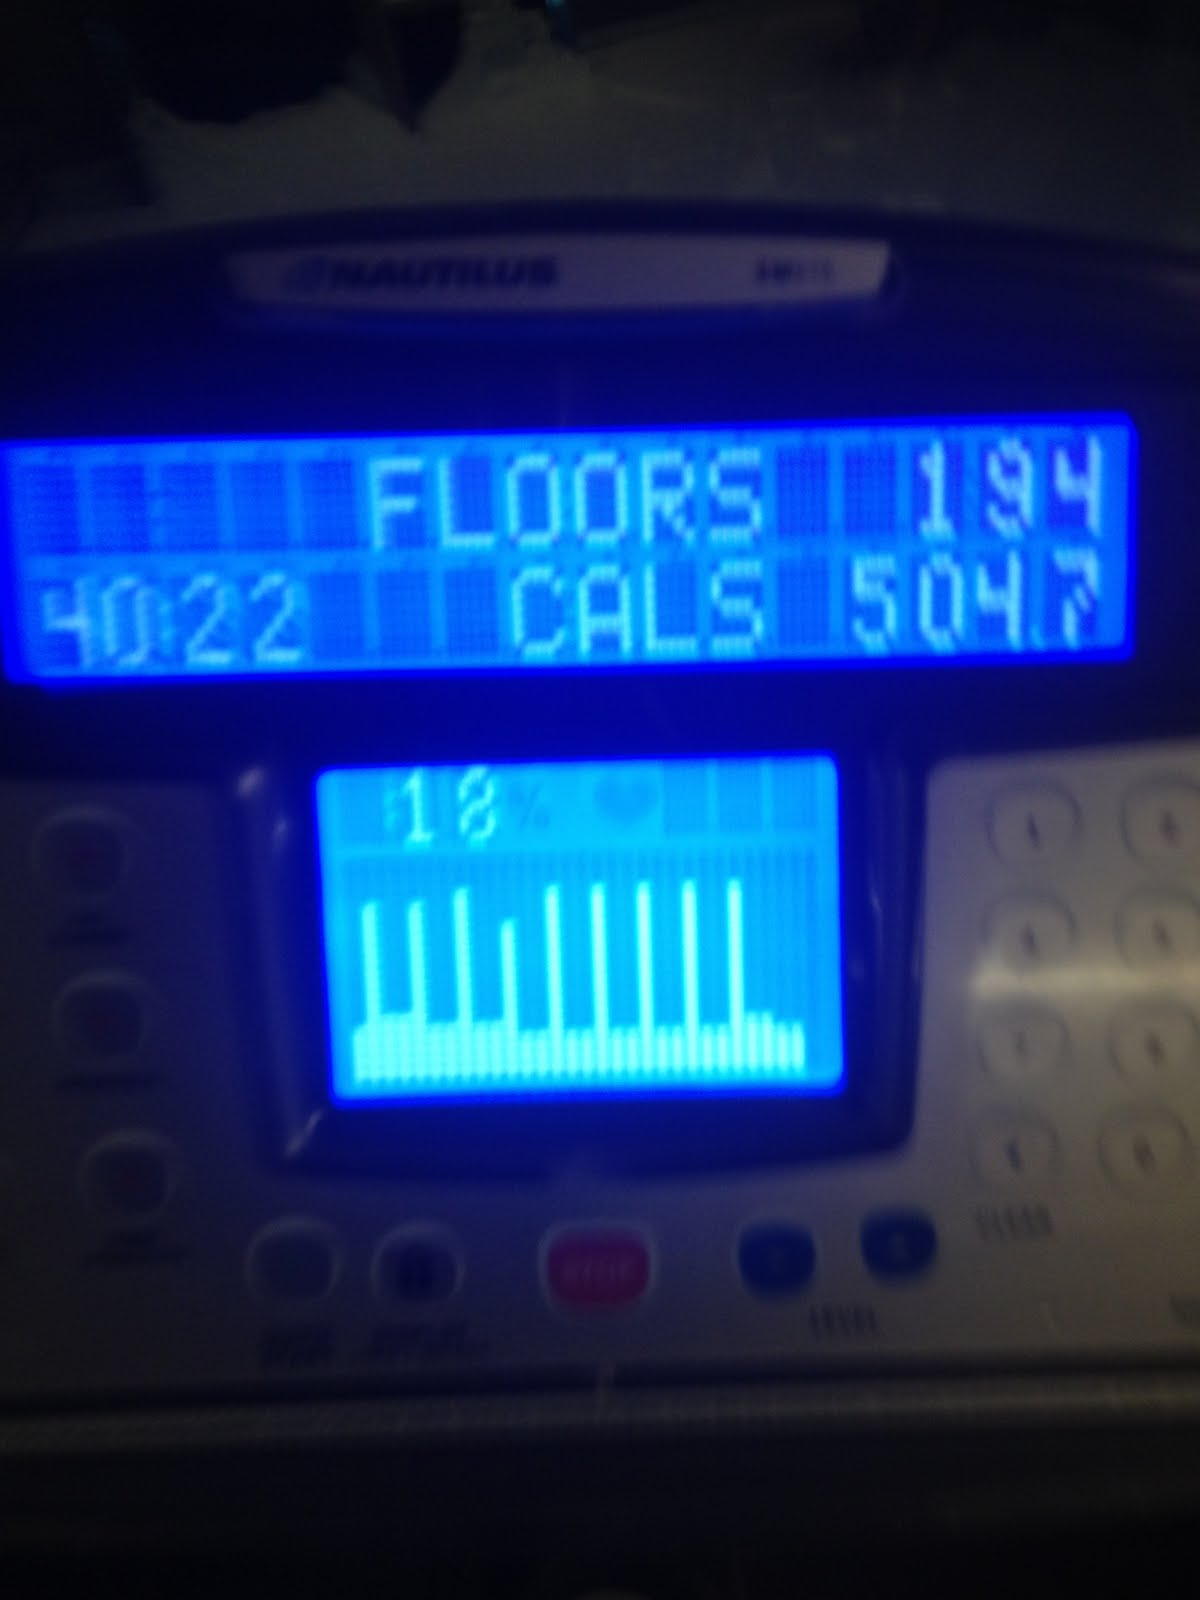 step machine calories burned